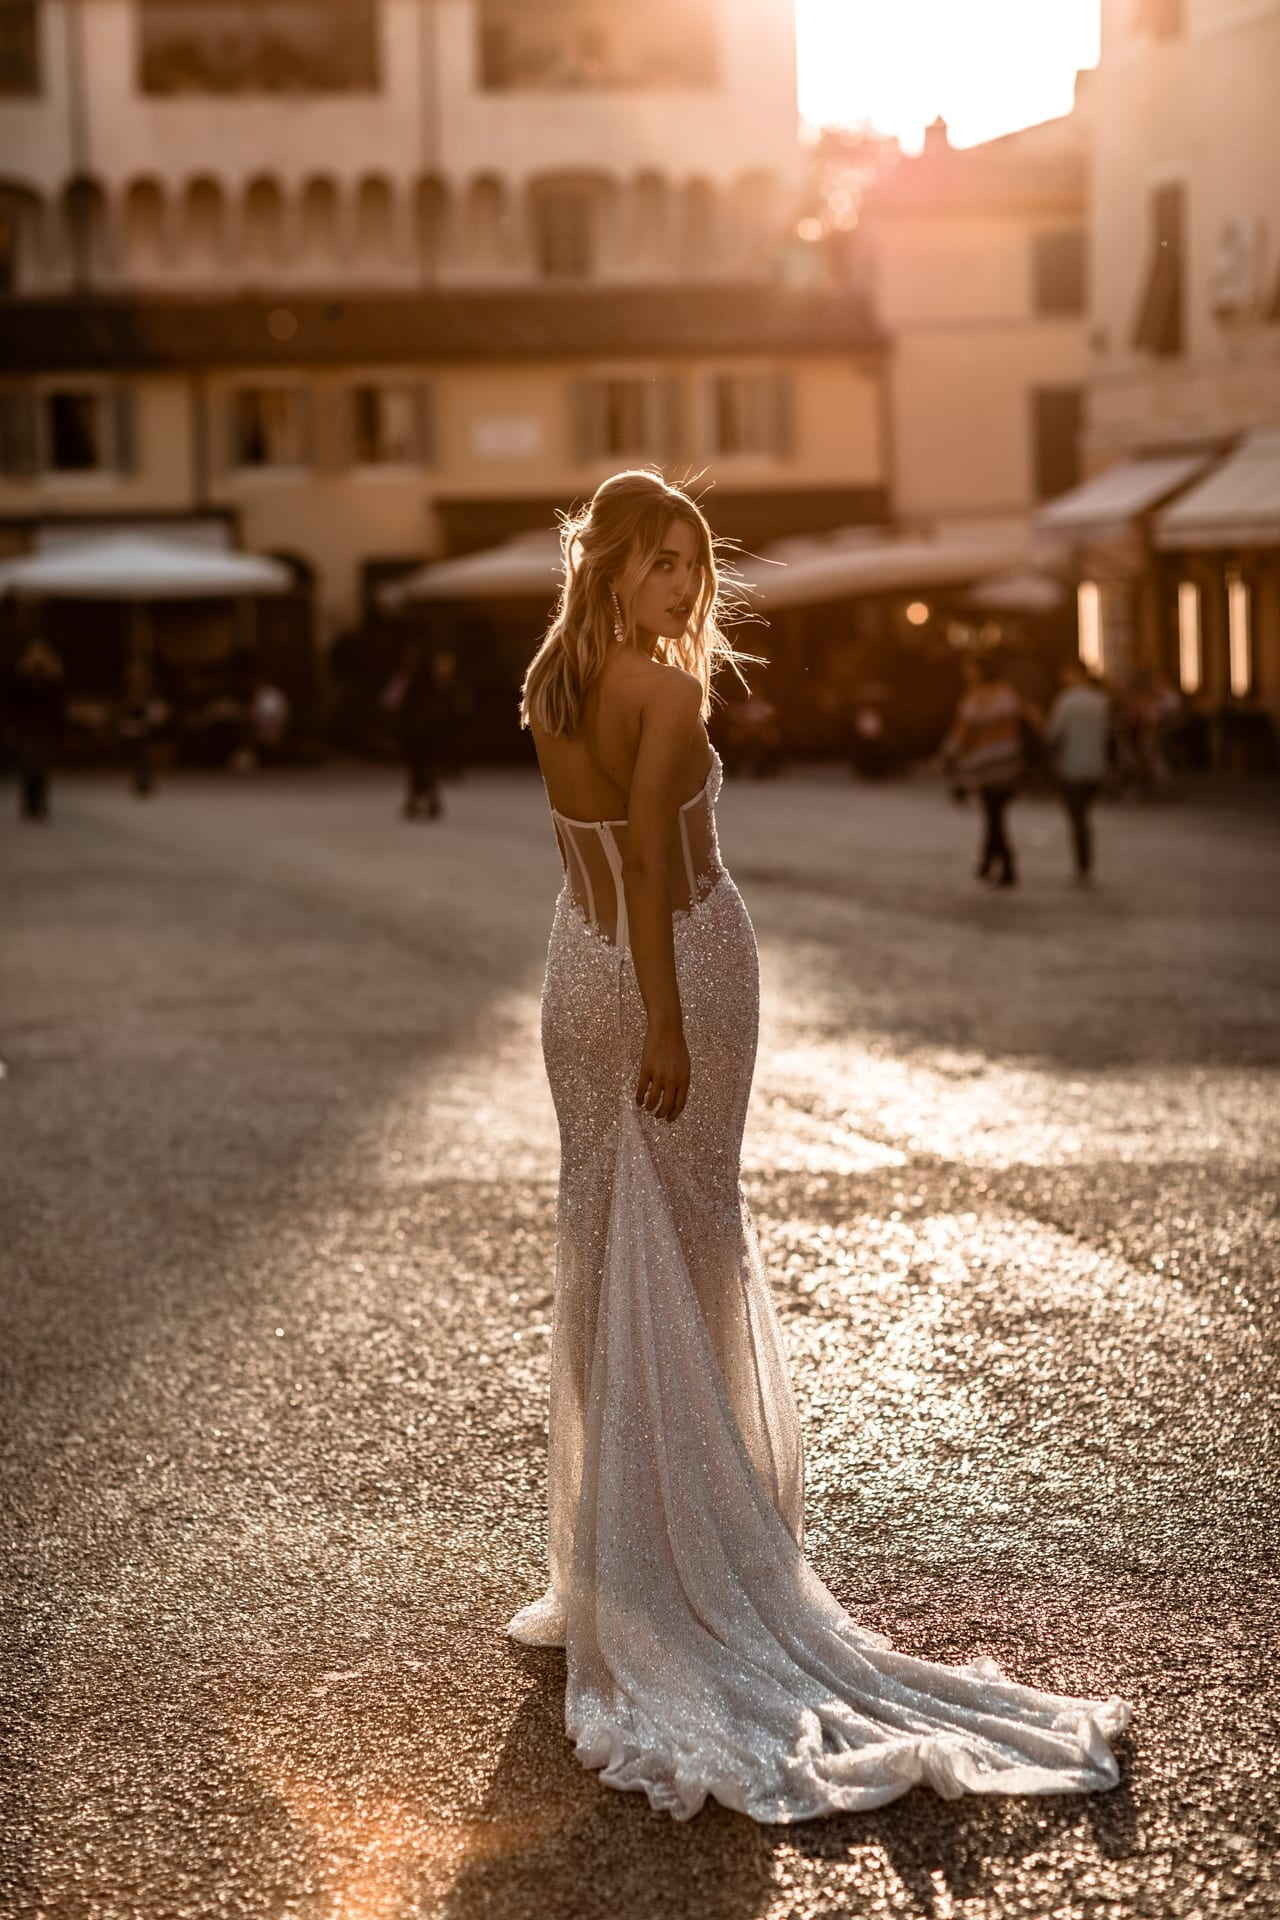 https://s3-eu-central-1.amazonaws.com/righiphotography-com/wp-content/uploads/2020/02/02183146/Wedding-Photo-No-Pose-Studio-Fotografico-Righi-RIGHI-68.jpg